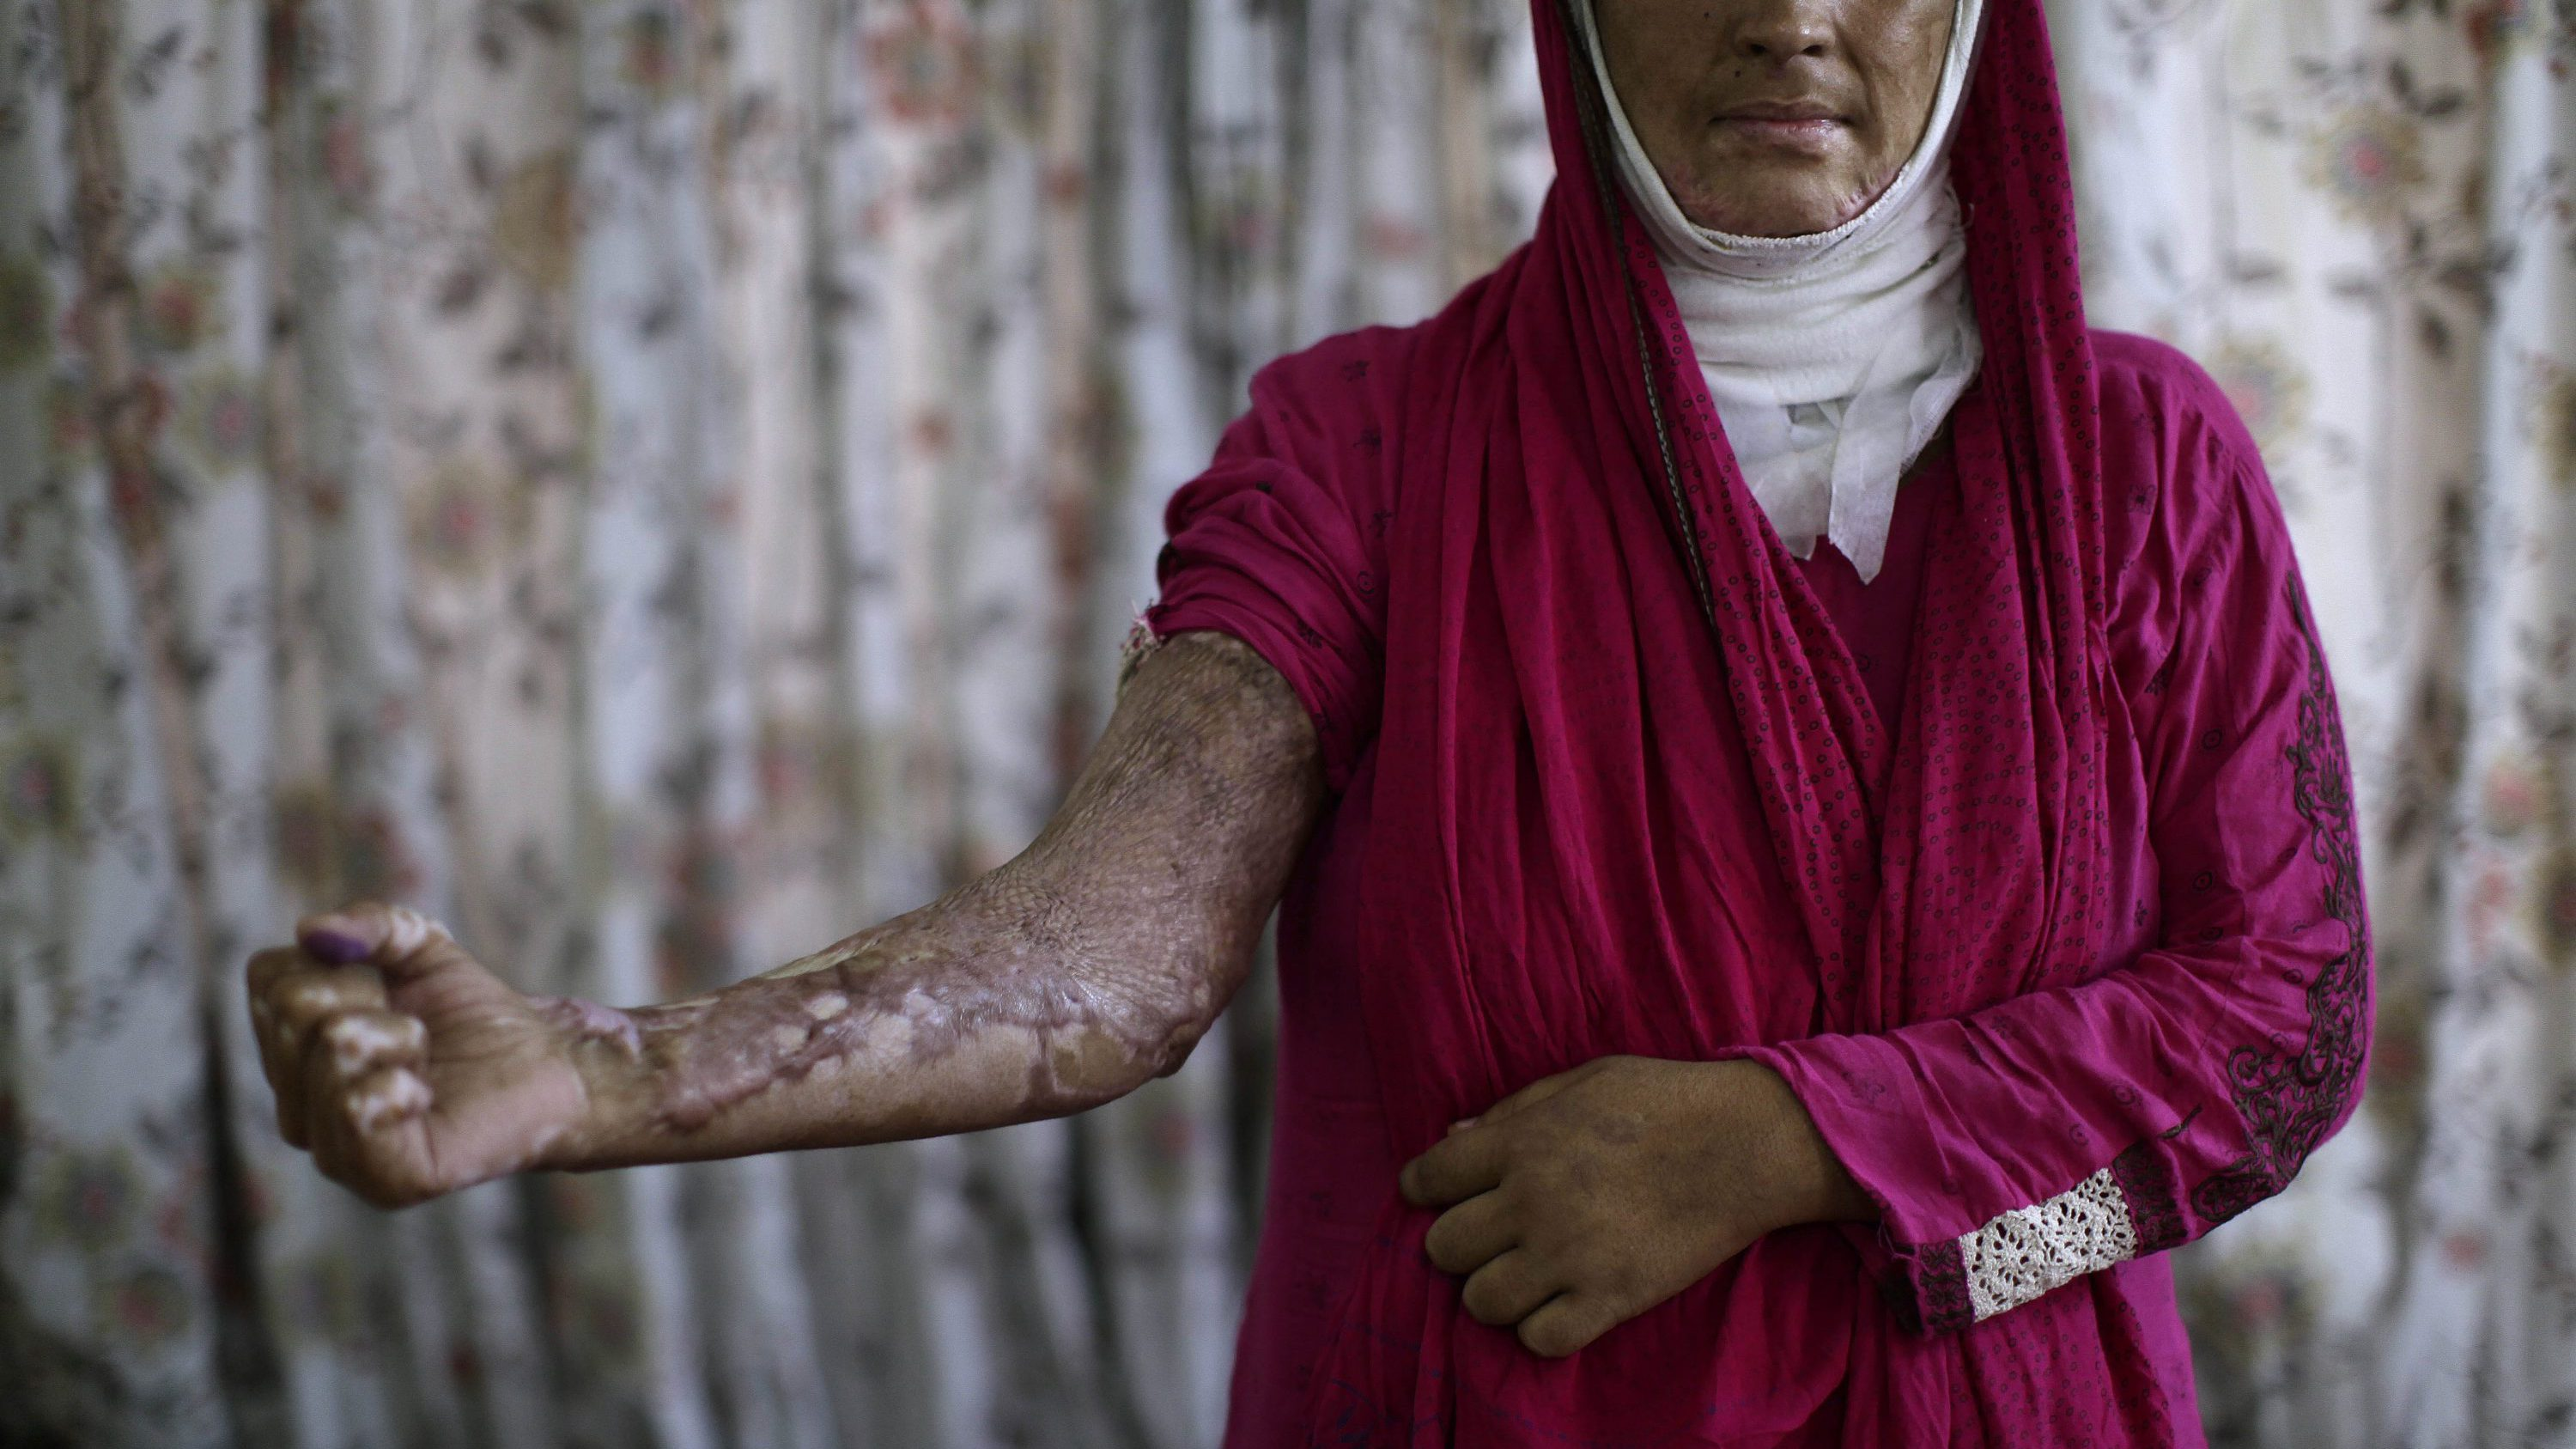 In this May 26, 2012, photo, Pakistani survivor Sajda Ansar, 26, who was set on fire by her husband, shows her burnt arm, at the Acid Survivors Foundation (ASF), in Islamabad, Pakistan. Sajda was set on fire by by her husband in April 2011, following an argument regarding his drug addiction.